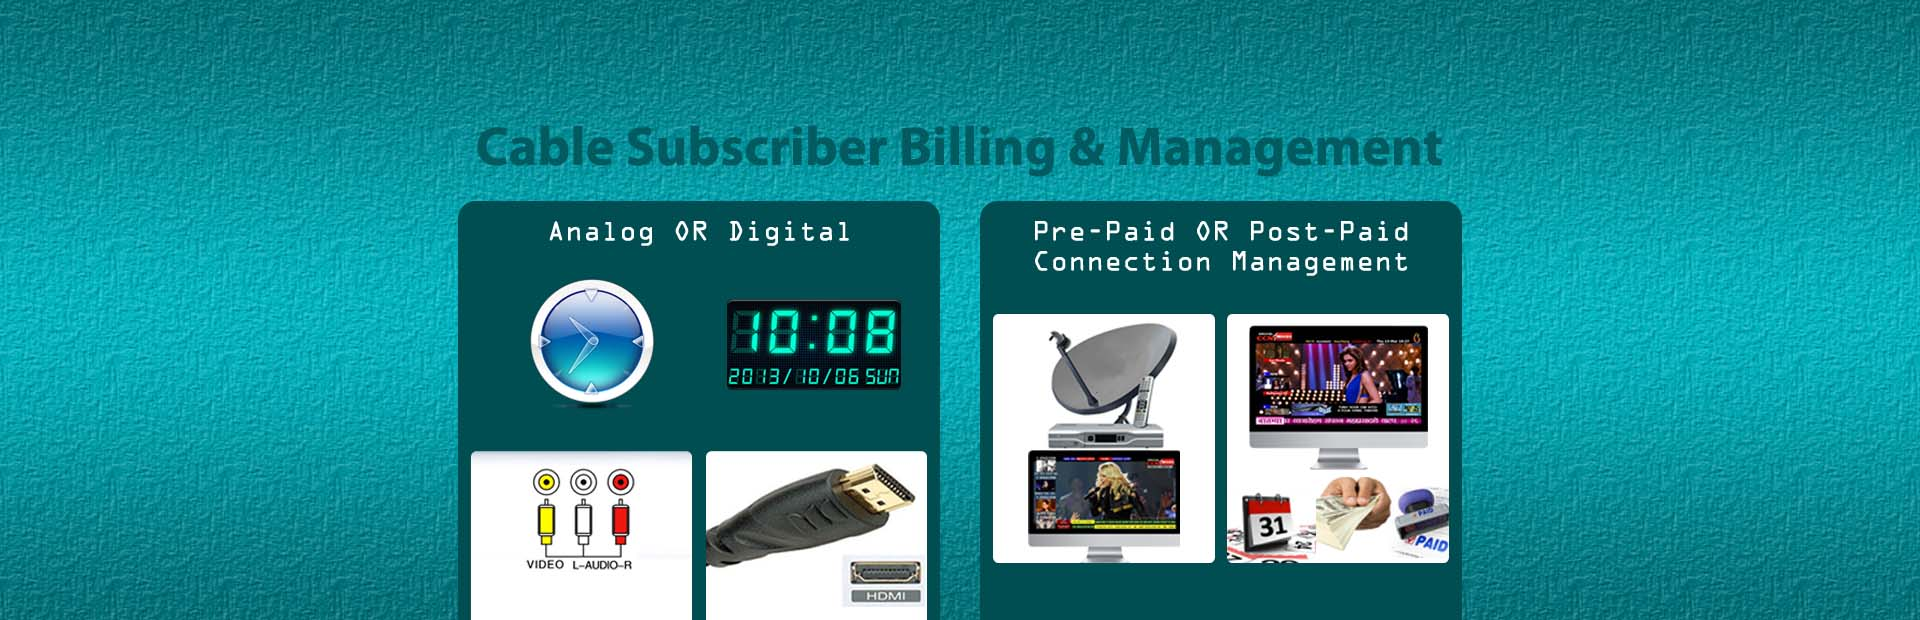 Subscriber management system for cable industry - Subscriber